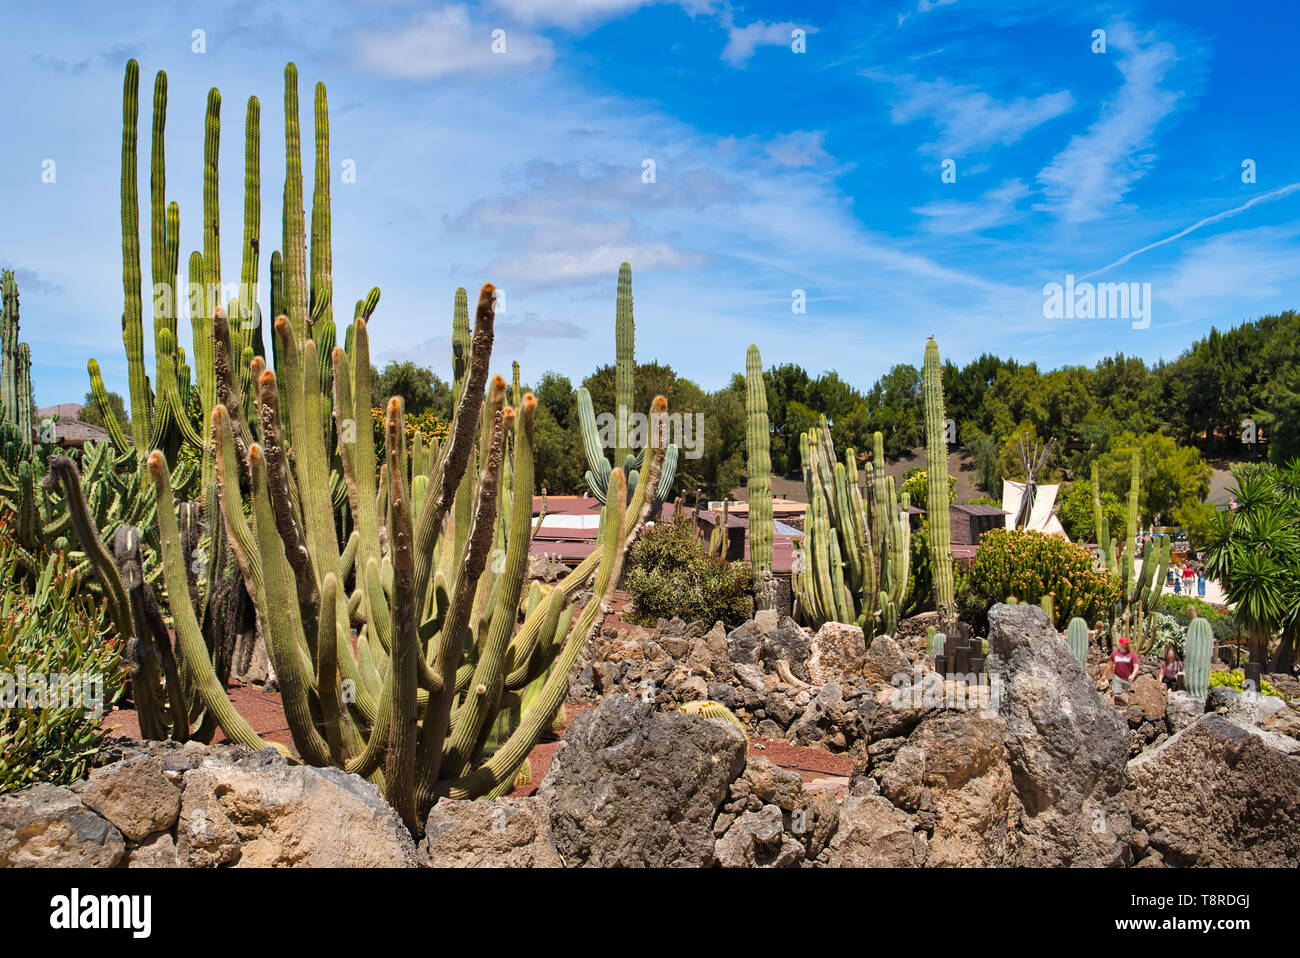 LANZAROTE, CANARY ISLANDS, SPAIN - APRIL 15, 2019: Different types of cacti / cactus alley in the park. Themed Rancho Texas Park on Lanzarote Island. Stock Photo